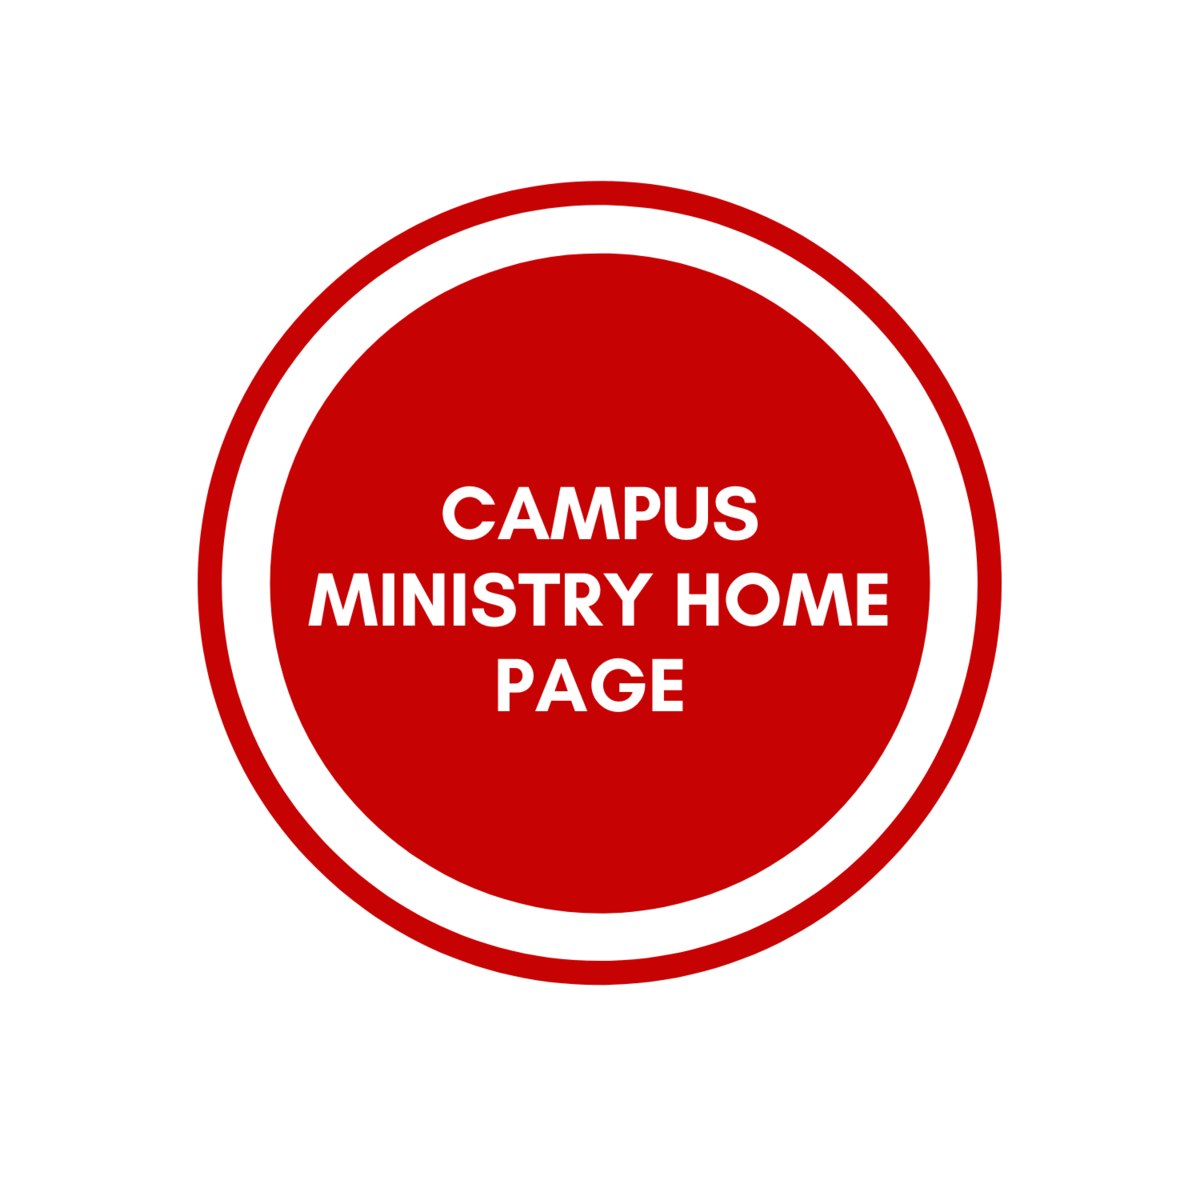 CM Home page